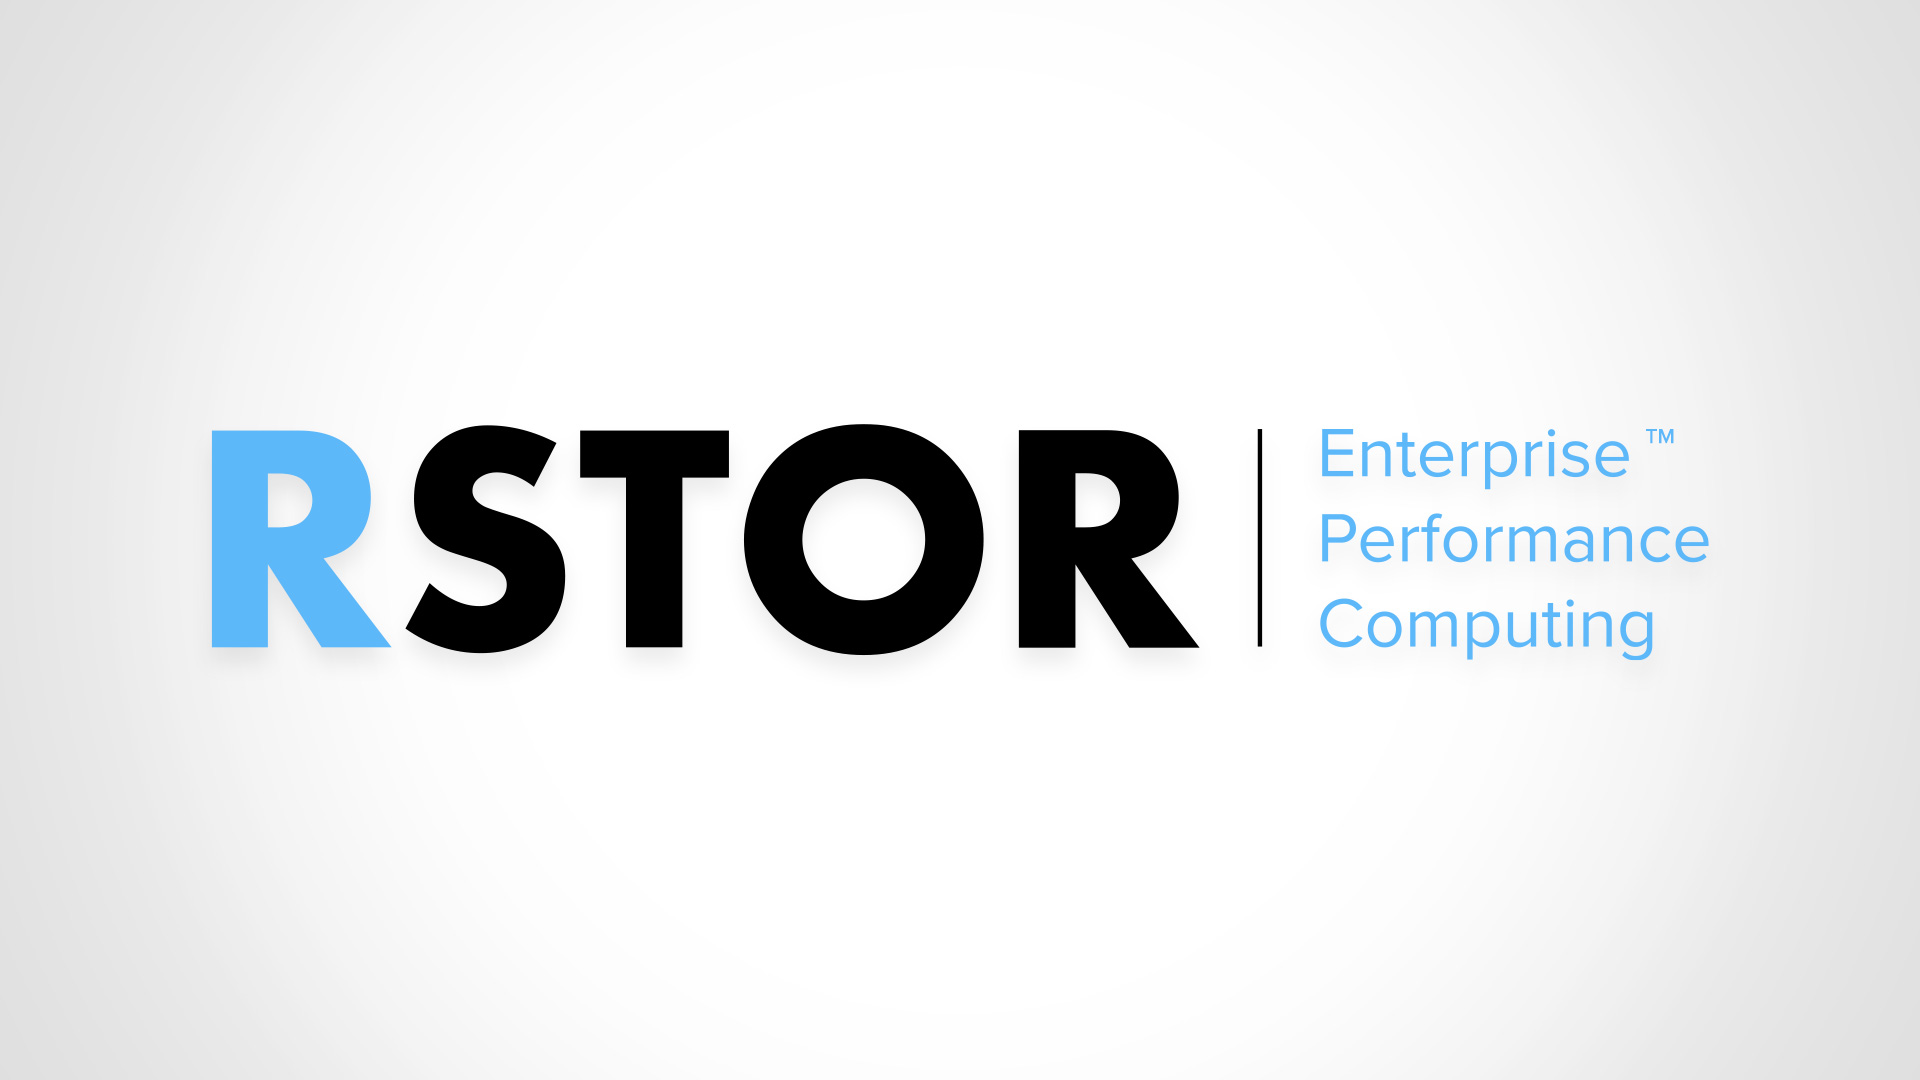 RSTOR EPC Enterprise Performance Computing